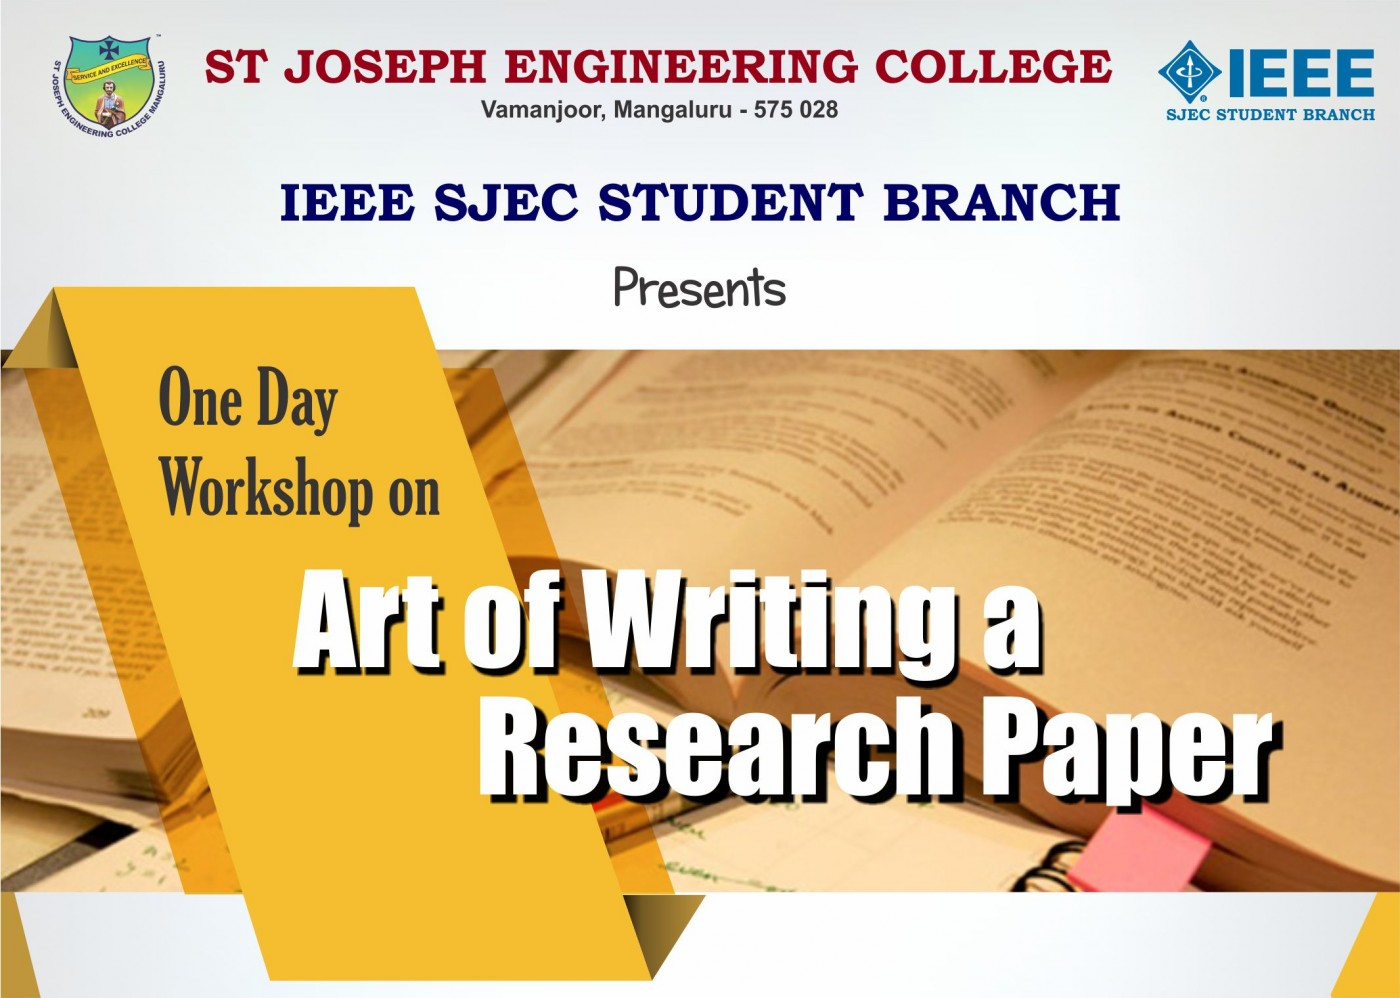 011 Workshop Banner Research Paper Striking Writing Meme Papers A Complete Guide 15th Edition Pdf Free 16th 1400